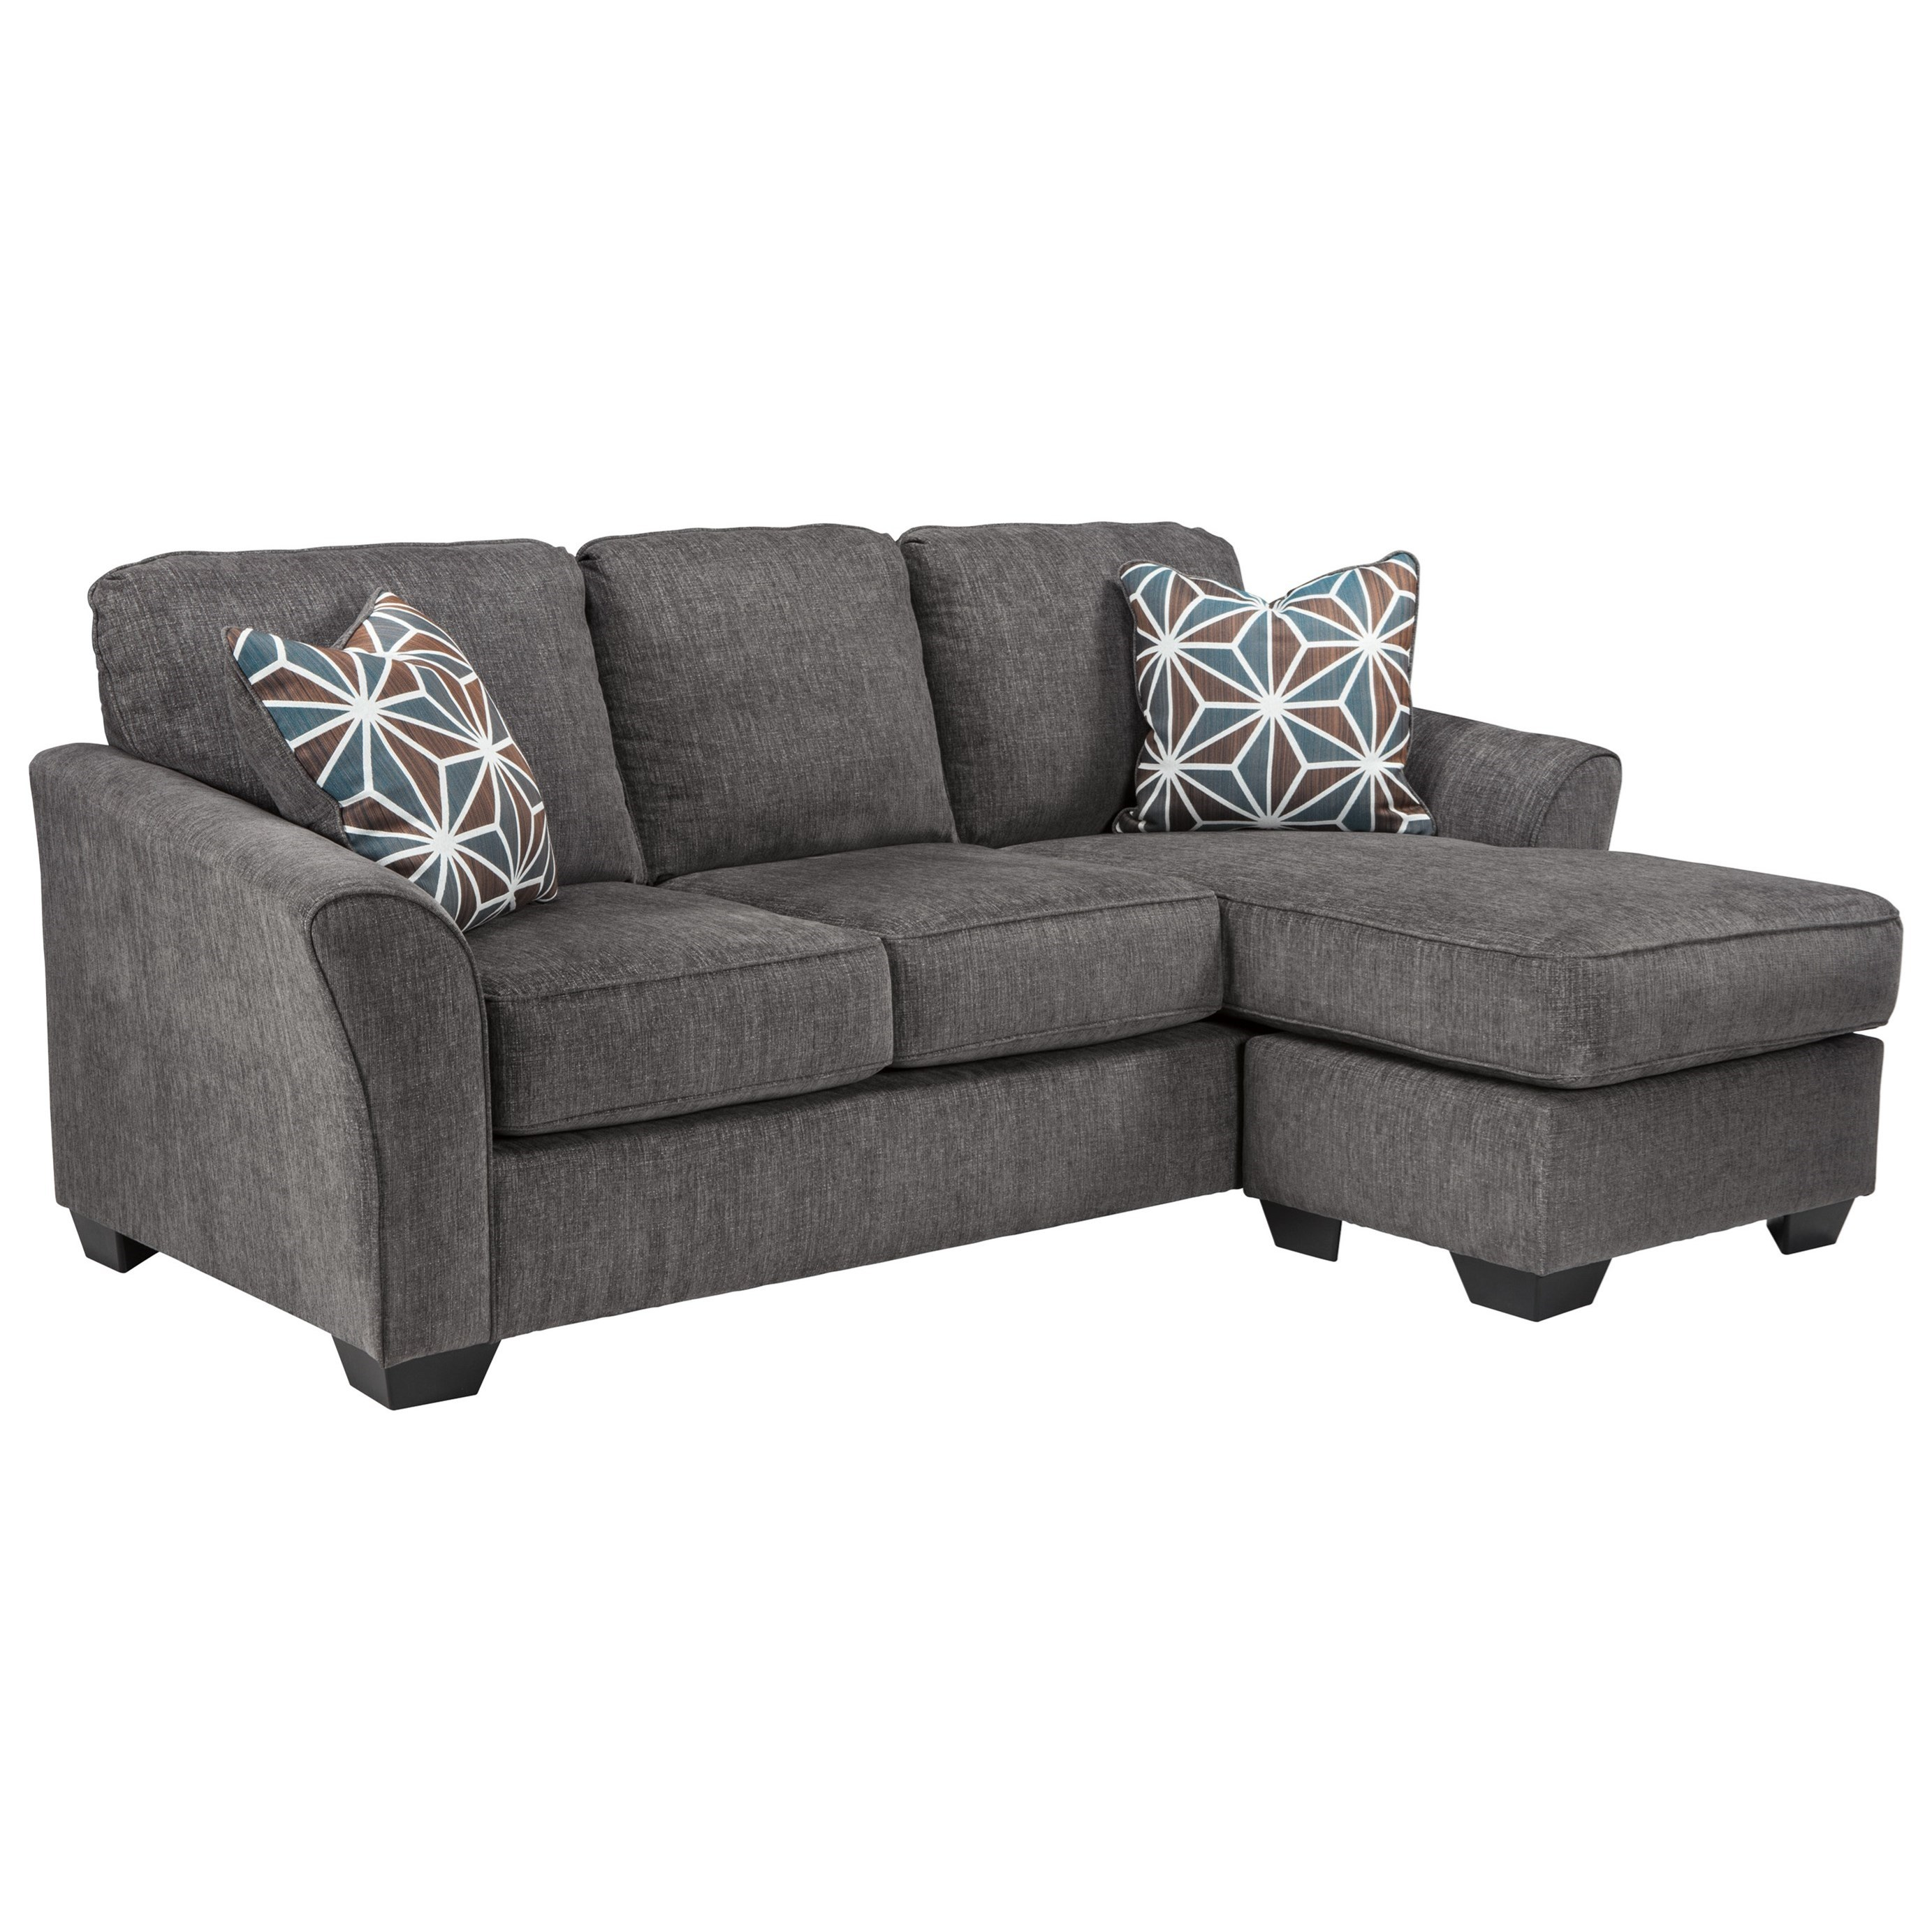 Benchcraft brise 8410268 casual contemporary queen sofa for Two in one furniture